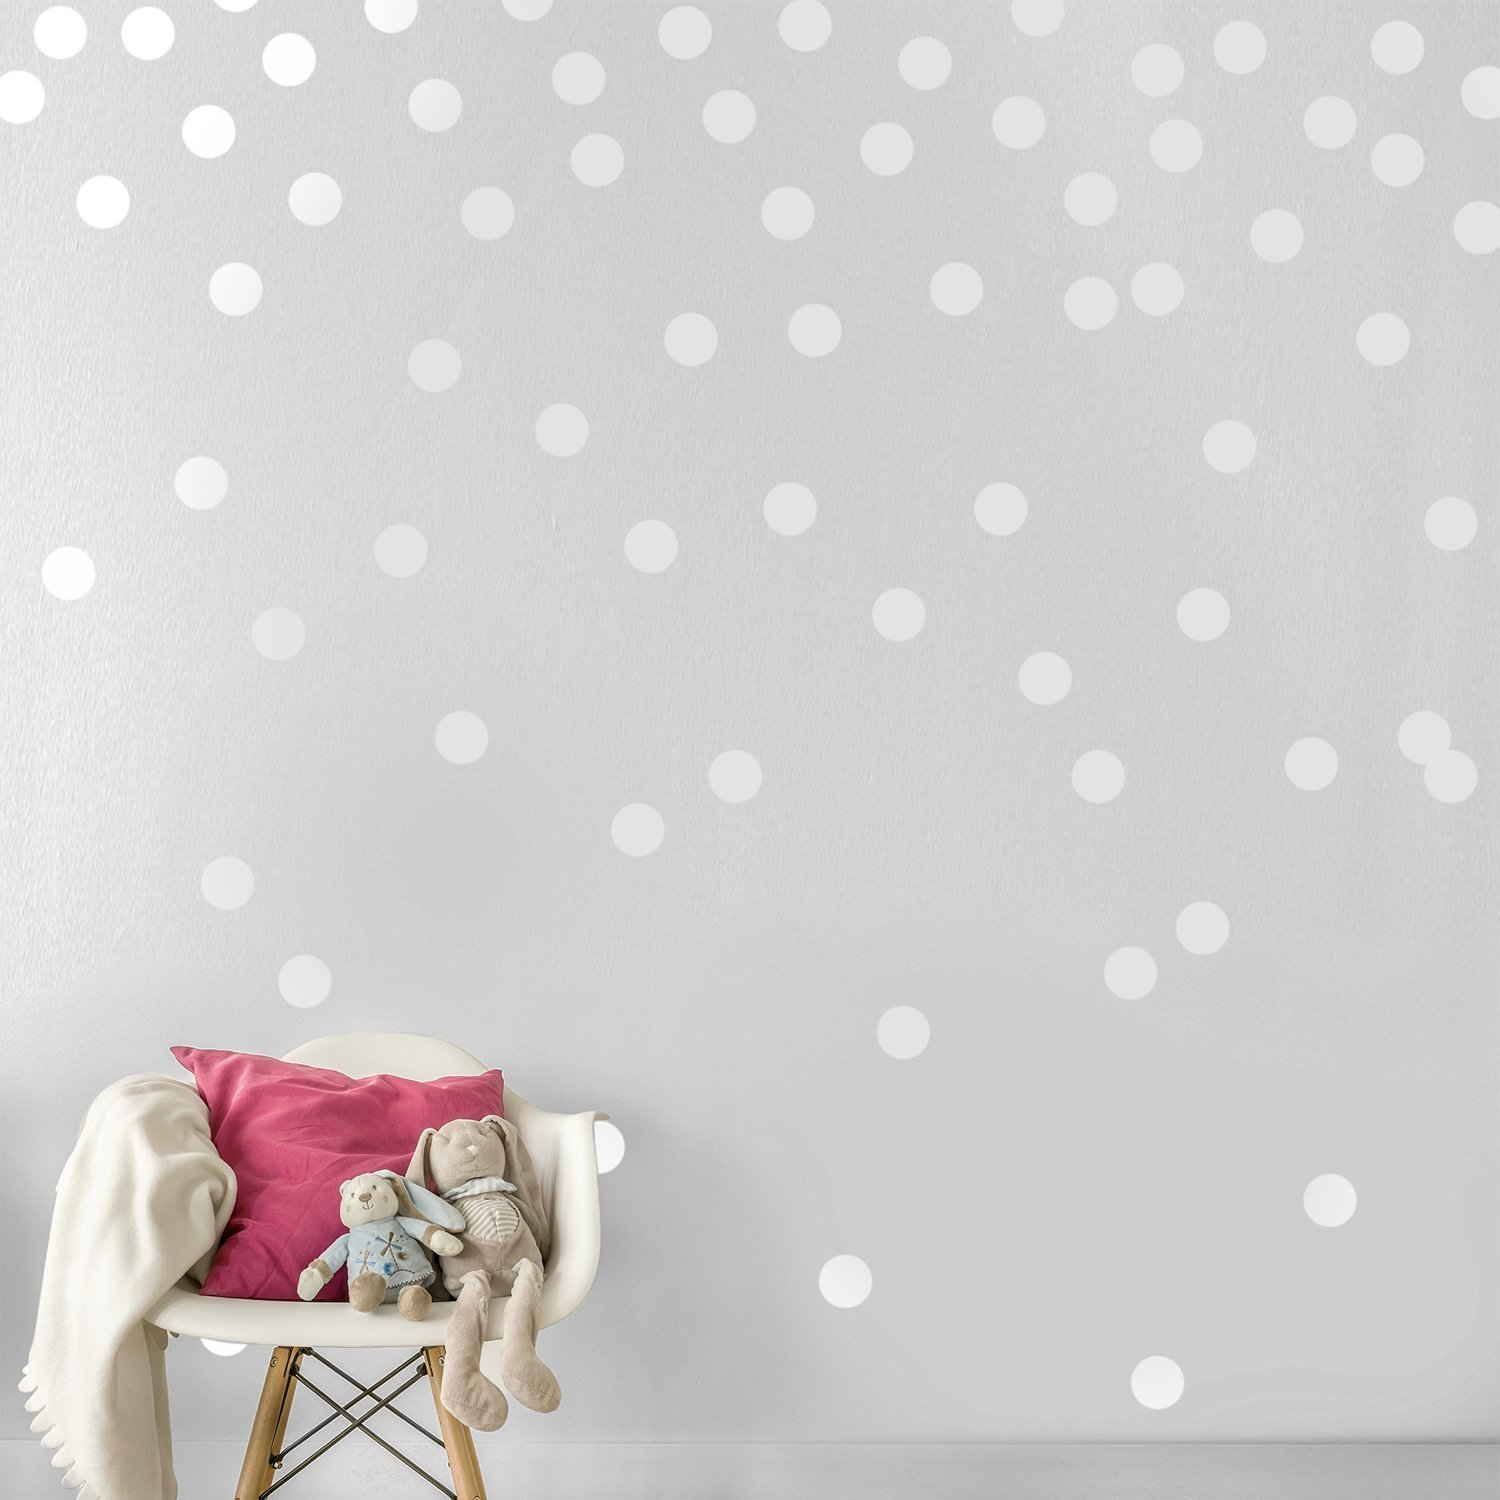 Wall Decal Dots (208 Decals) | Easy Peel & Stick Safe on Walls Paint | Removable Matte Vinyl Polka Dot Decor | Round Circle Art Glitter Sayings Sticker Large Paper Sheet Set for Nursery Room